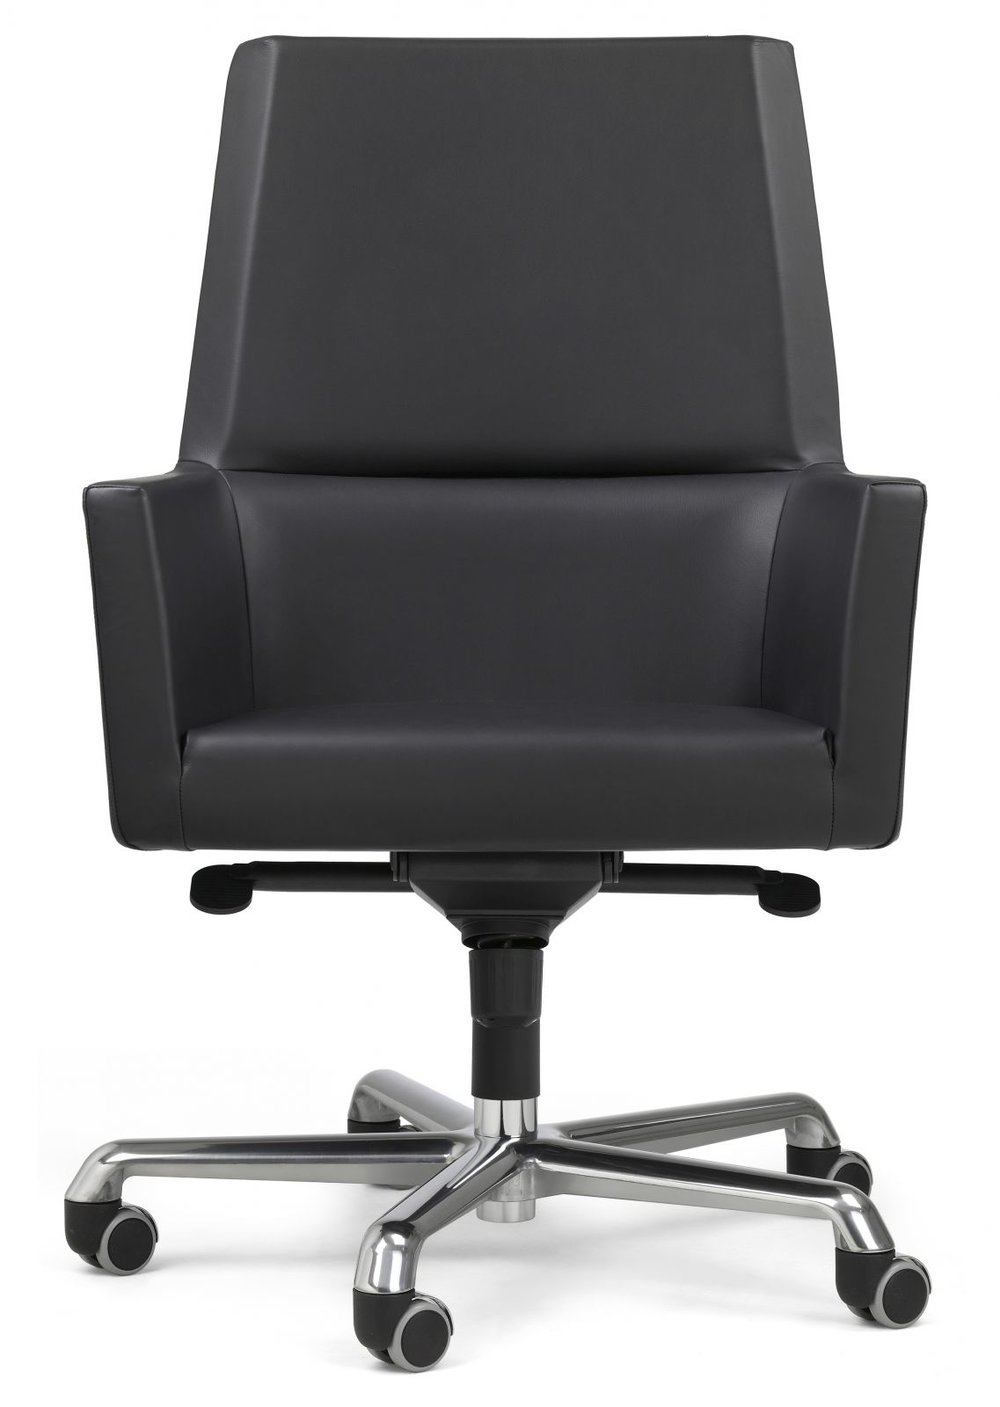 modern-office-chairs-Italian-furniture-designer-chairs (8).jpg